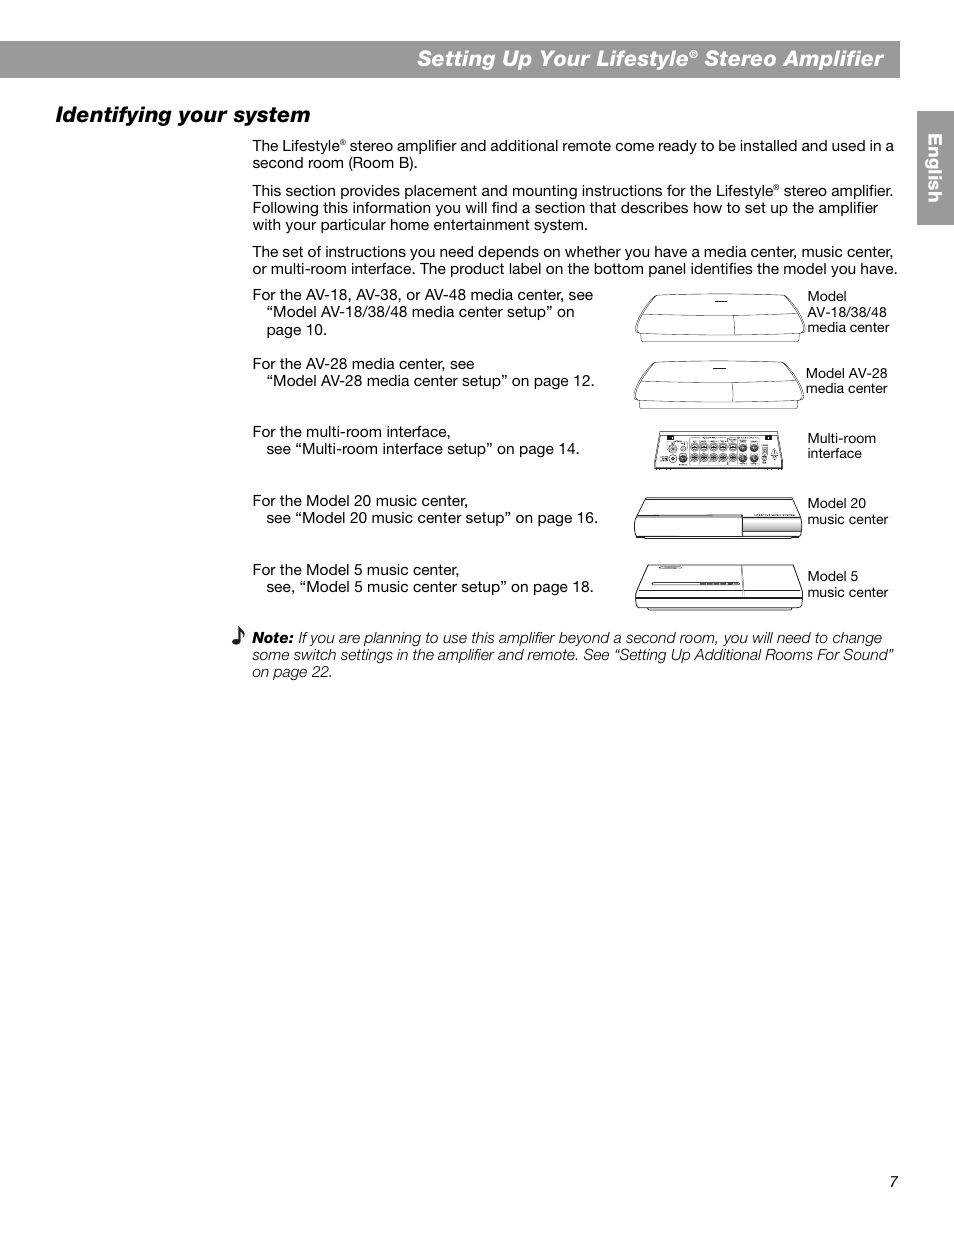 Setting up your lifestyle, Stereo amplifier identifying your system   Bose  SA-2 User Manual   Page 9 / 88